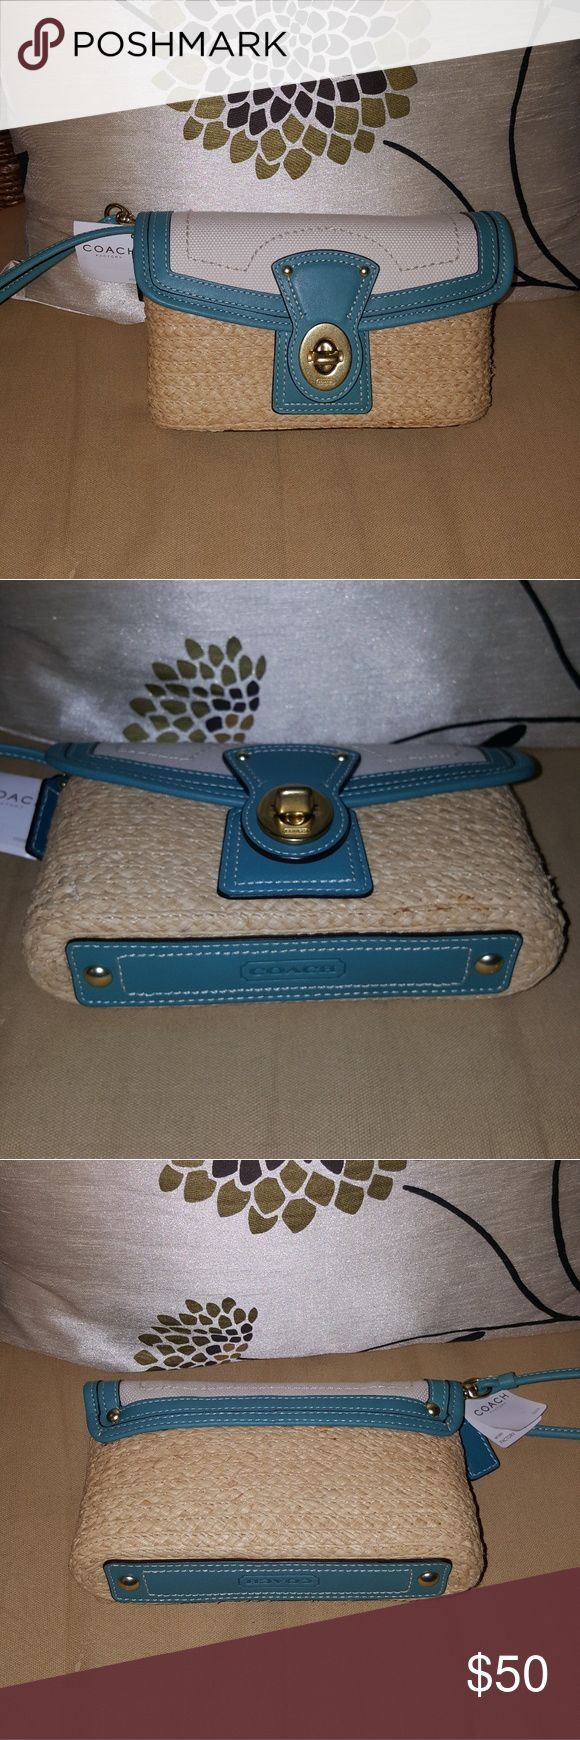 """Coach Legacy teal woven wicker wristlet New with tags Size 8"""" long X 5"""" high X 2"""" wide. Coach Bags Clutches & Wristlets"""